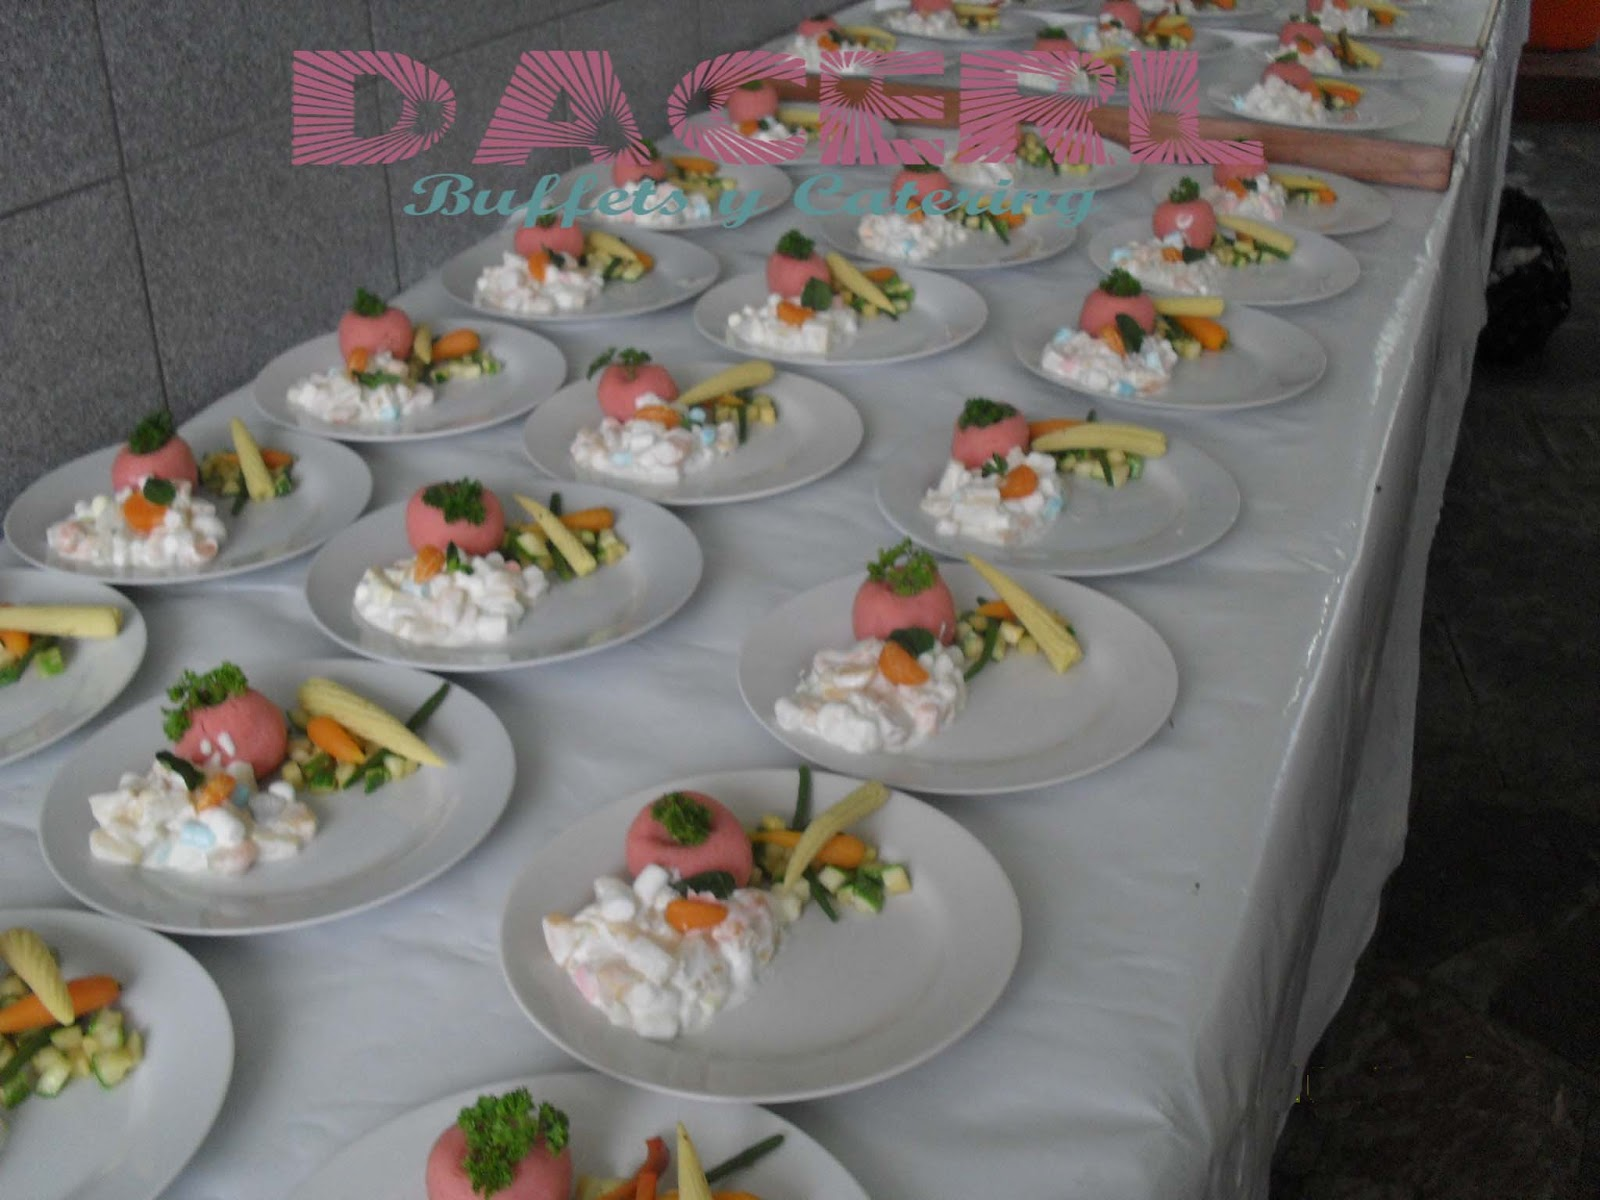 Dacerl catering buffets platos de fondo dacerl for Platos para